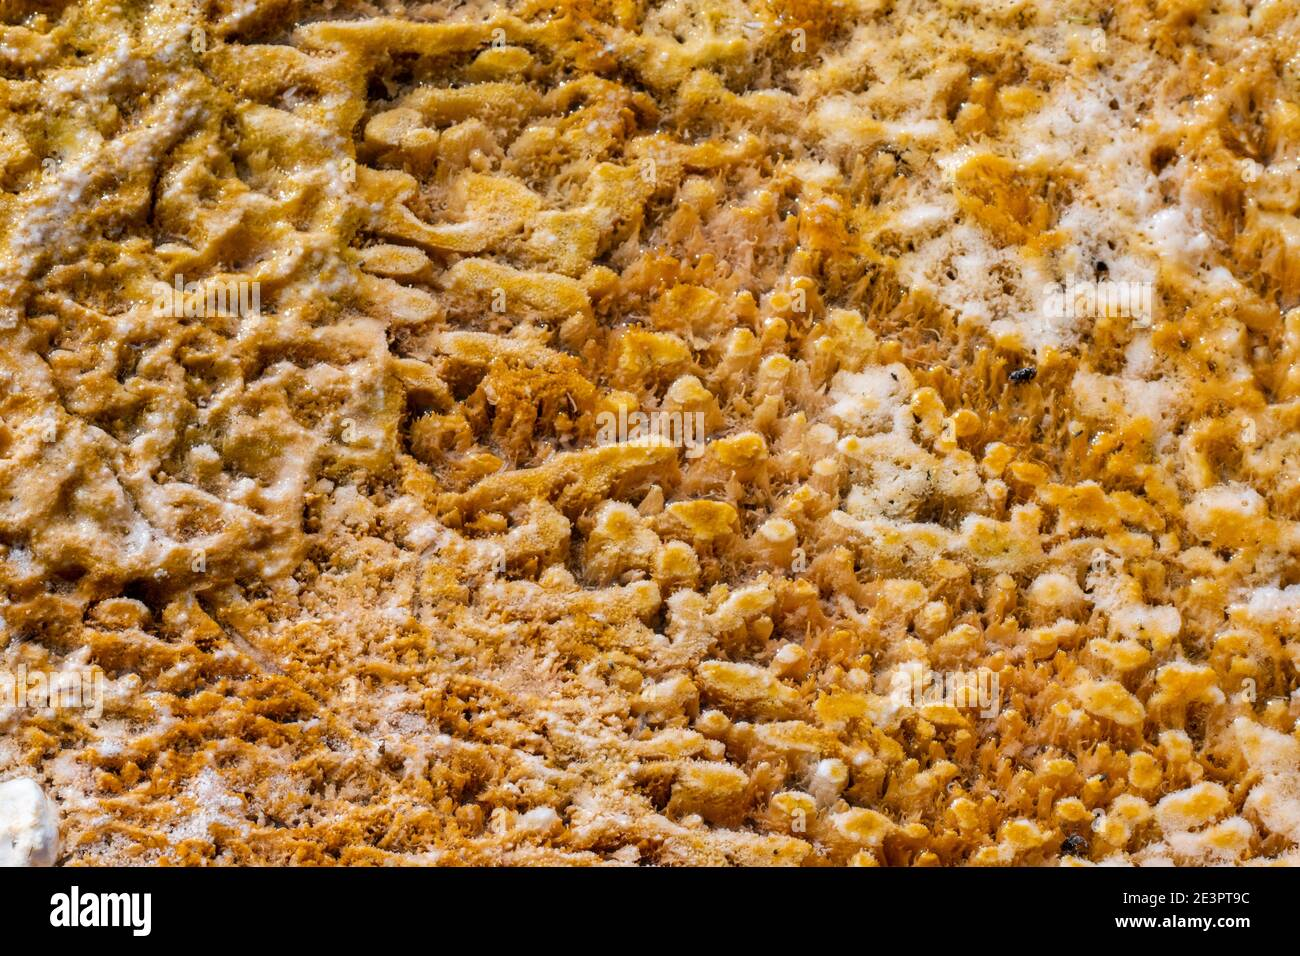 North America, Wyoming, Yellowstone National Park, Black Sand Basin. Detail of colorful thermophile bacteria mat. Stock Photo